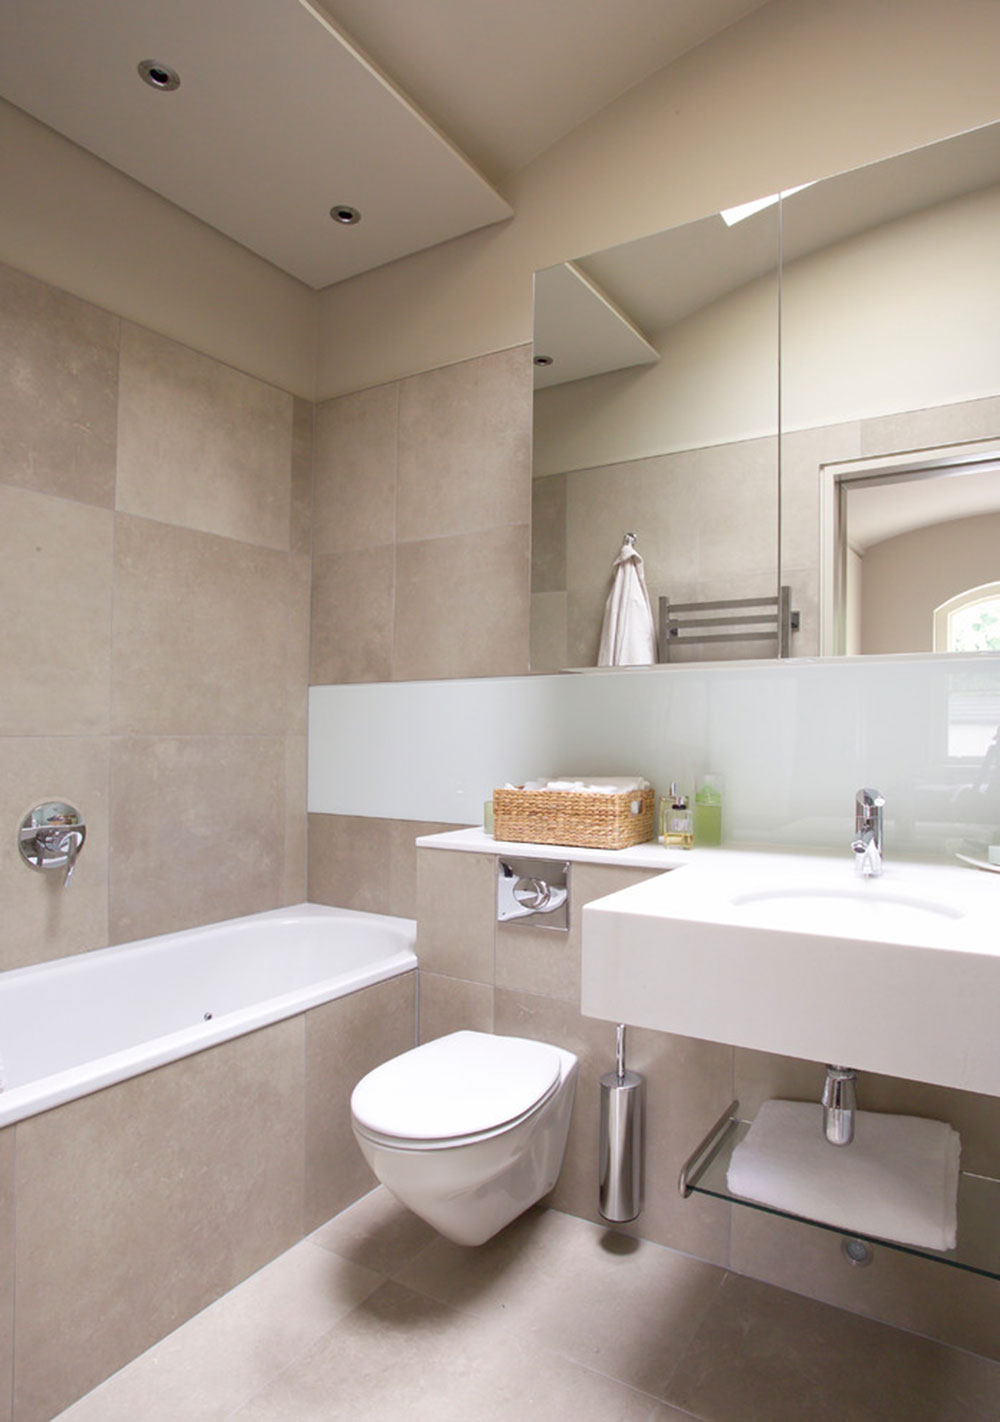 For-more-space-use-wall-mounted toilet-5 wall-mounted toilet ideas